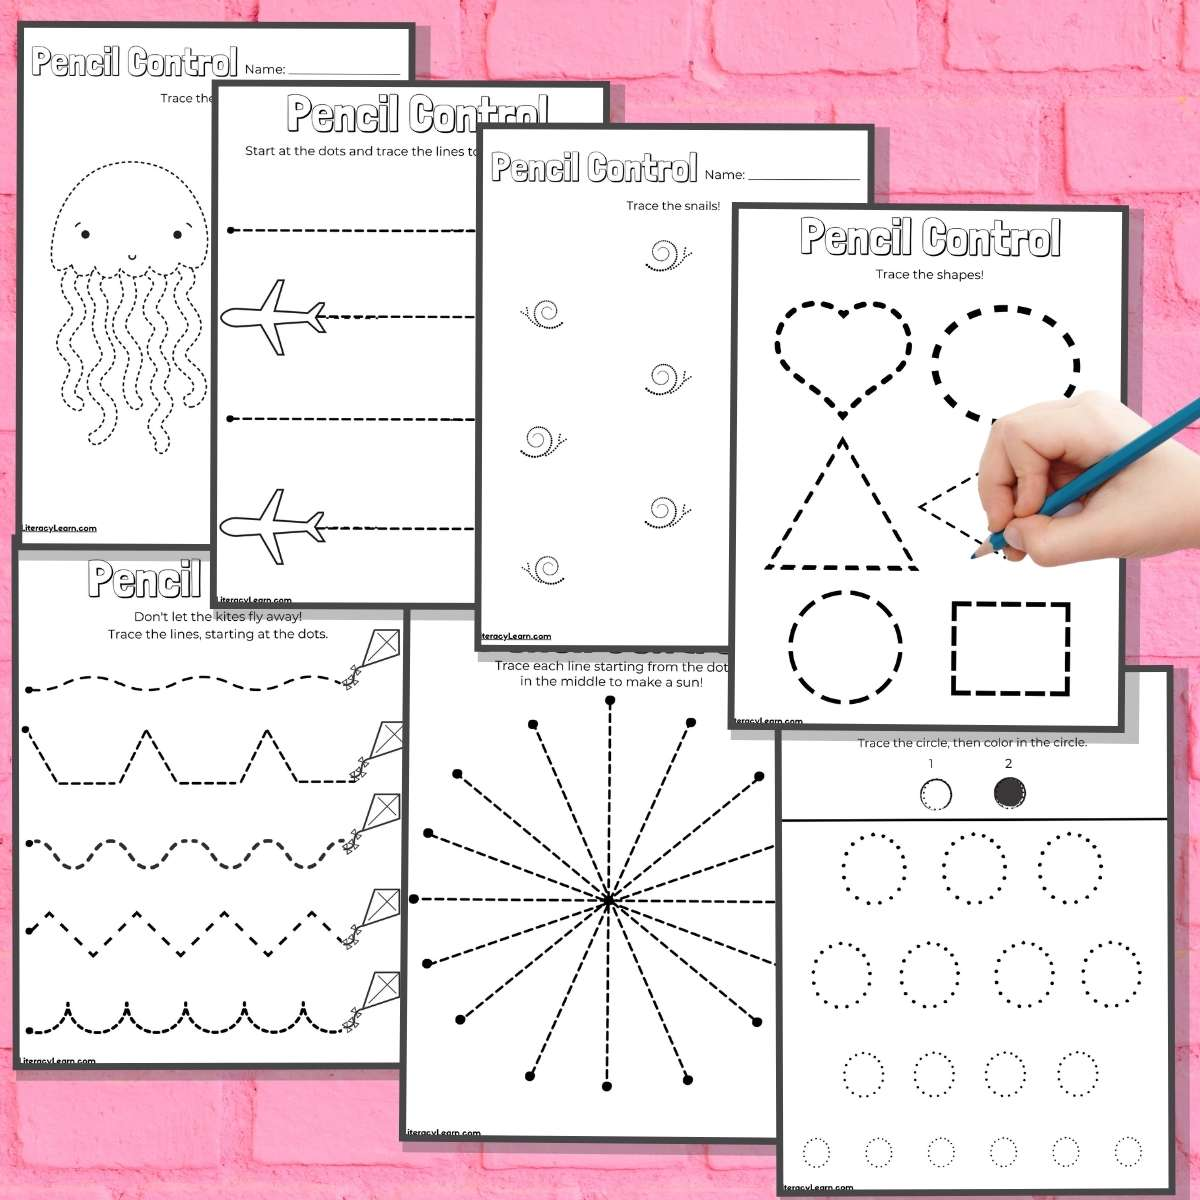 Seven pencil control worksheets on a pink brick background.